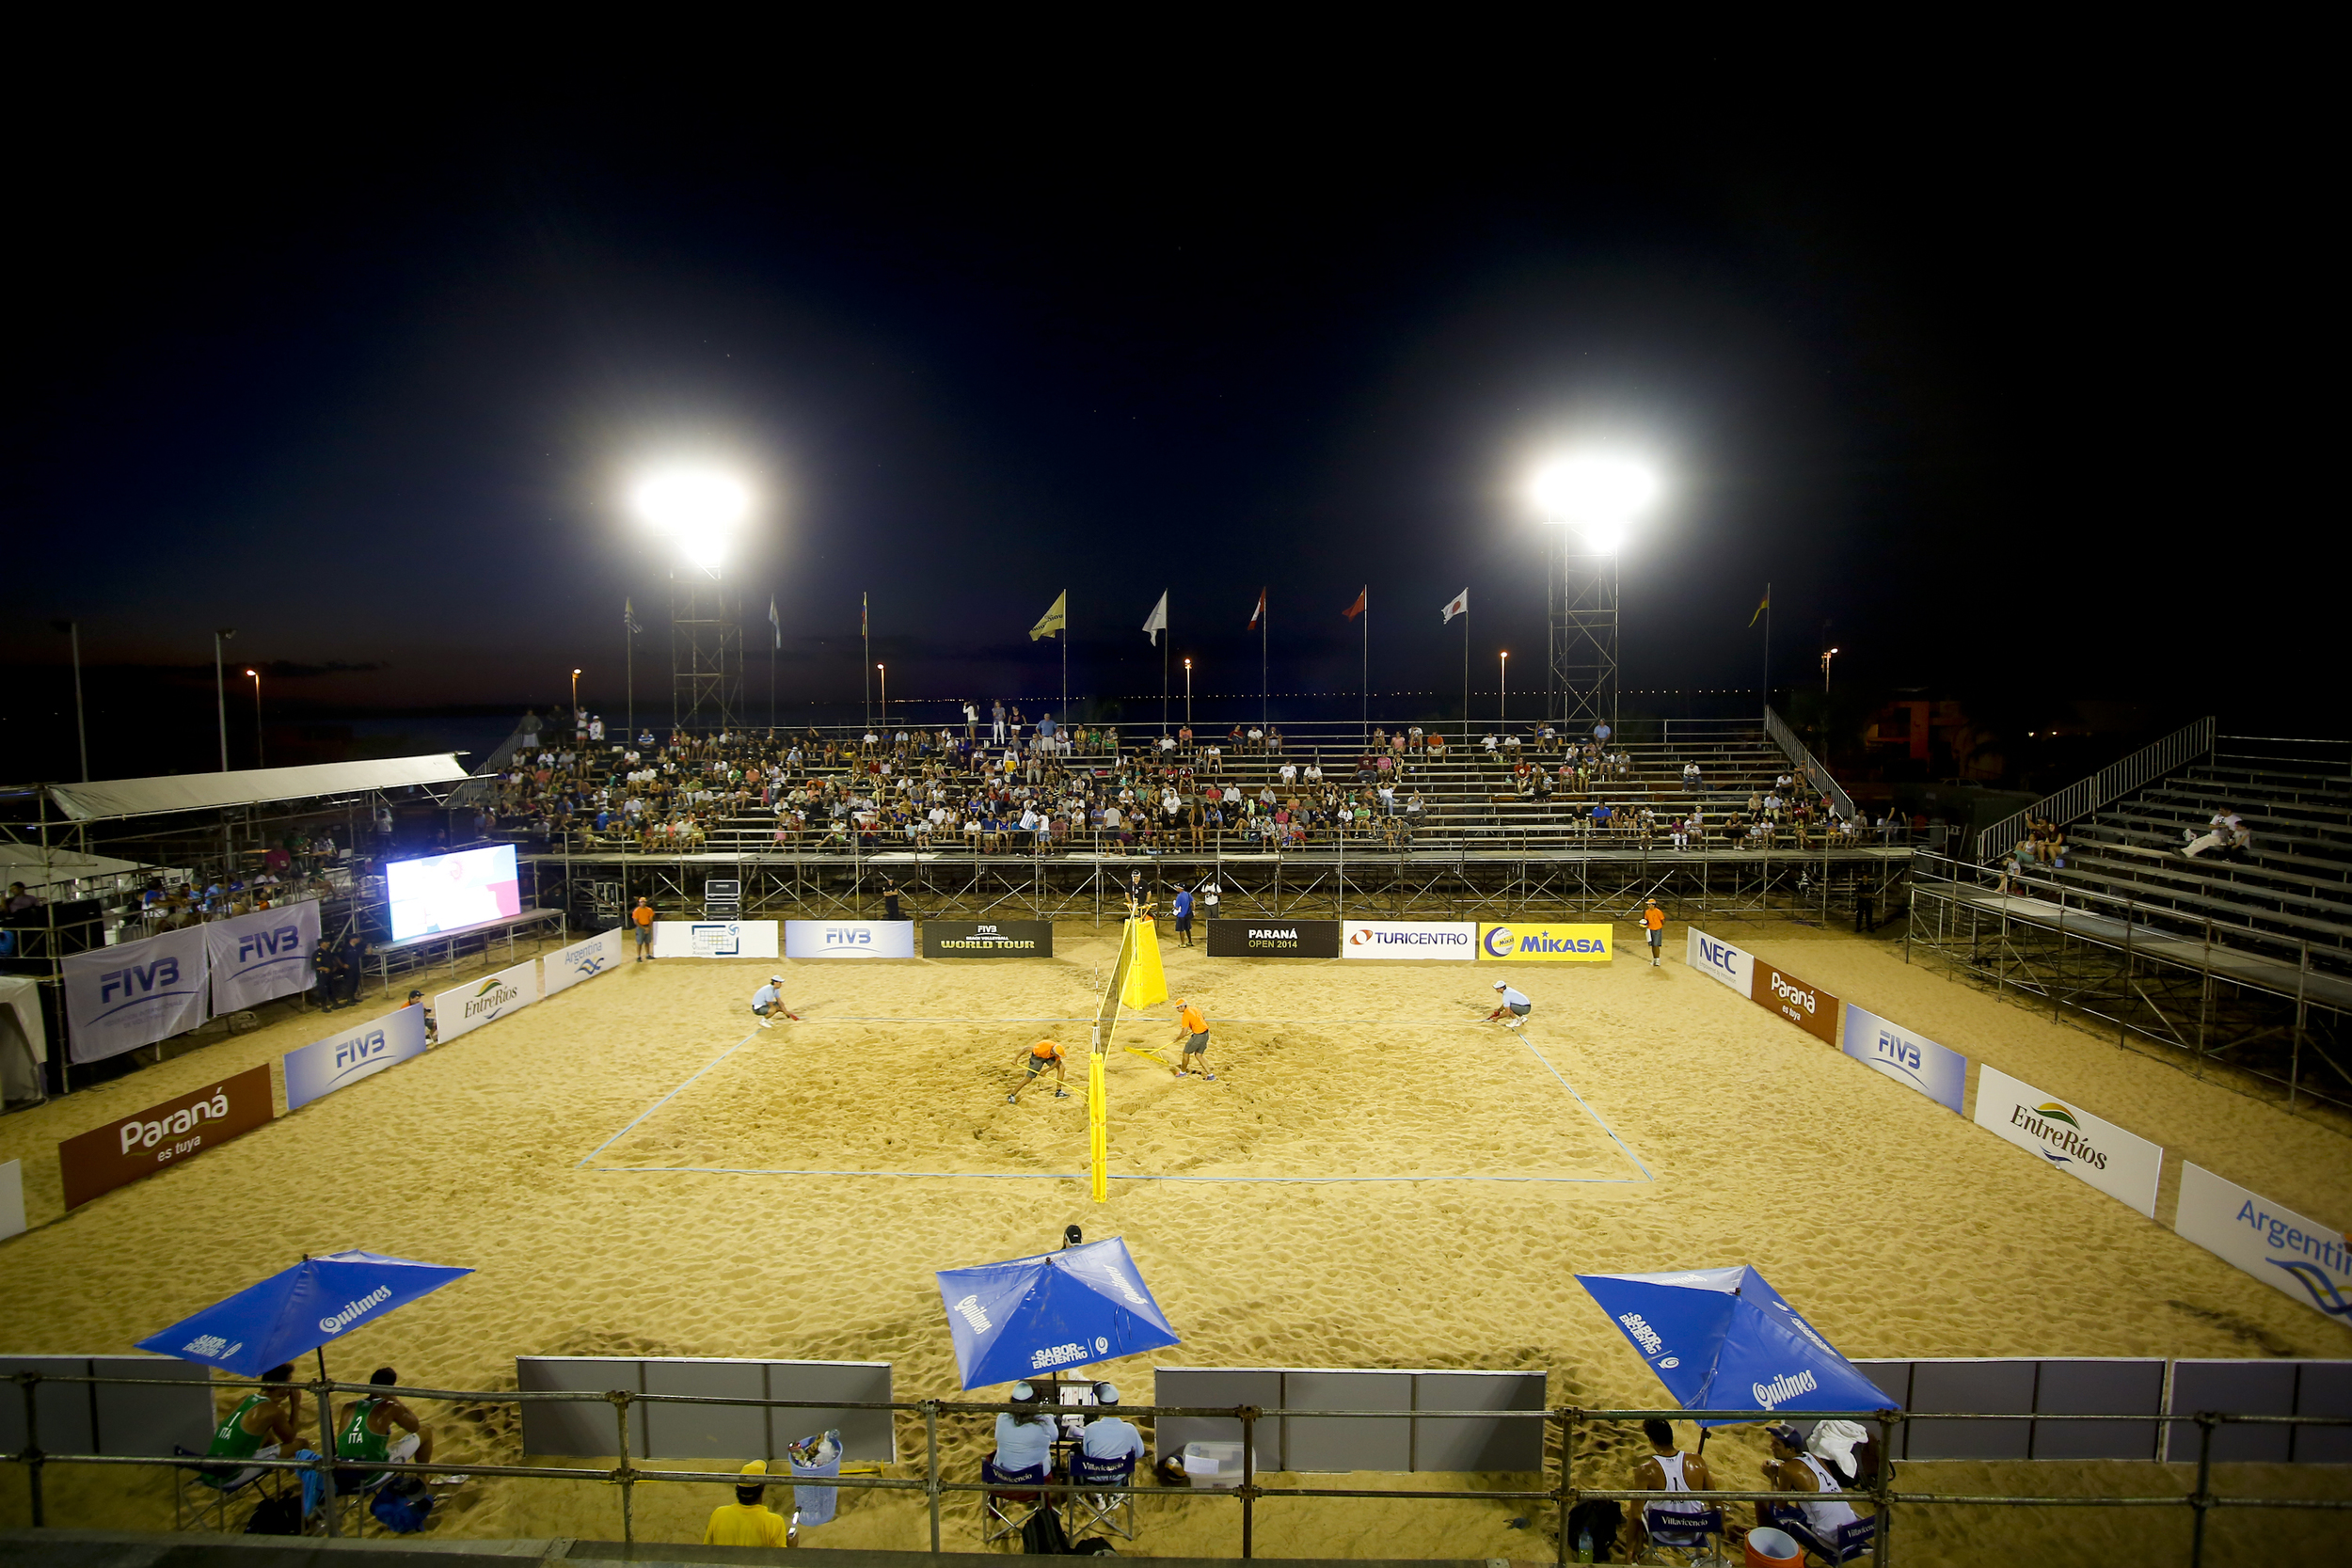 Centre court under the night lights at the Parana Open.